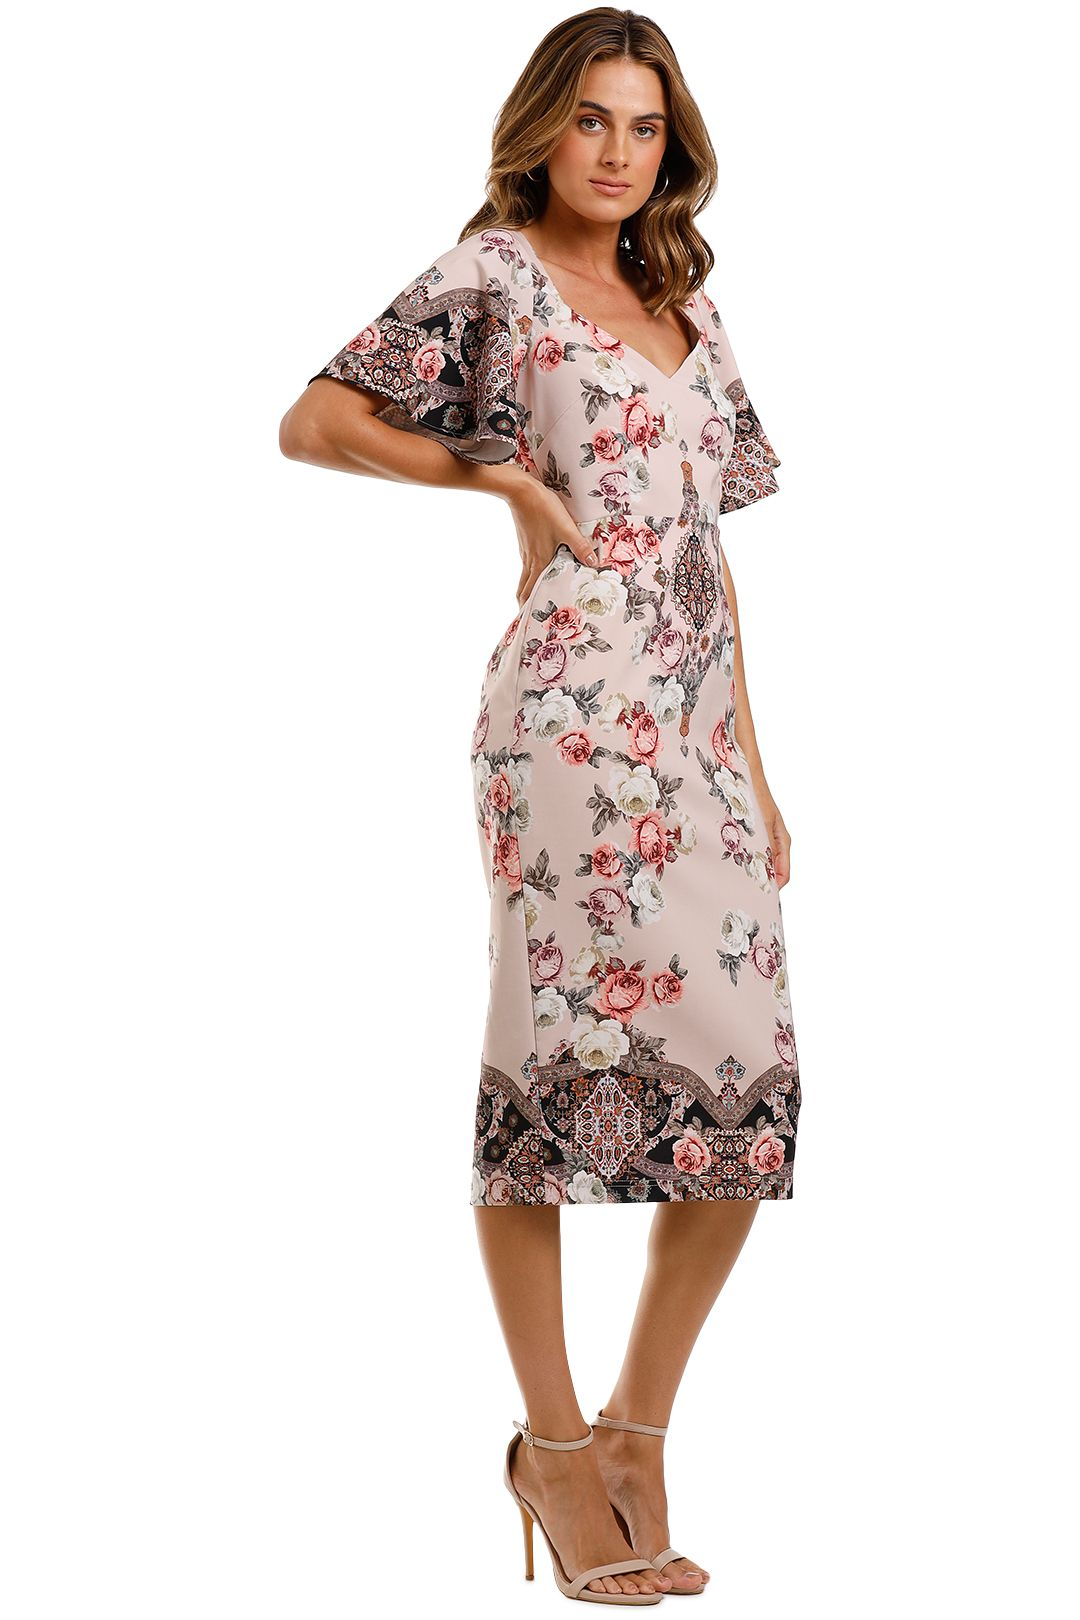 Pasduchas Chichi Sleeve Midi Dress Floral Blush